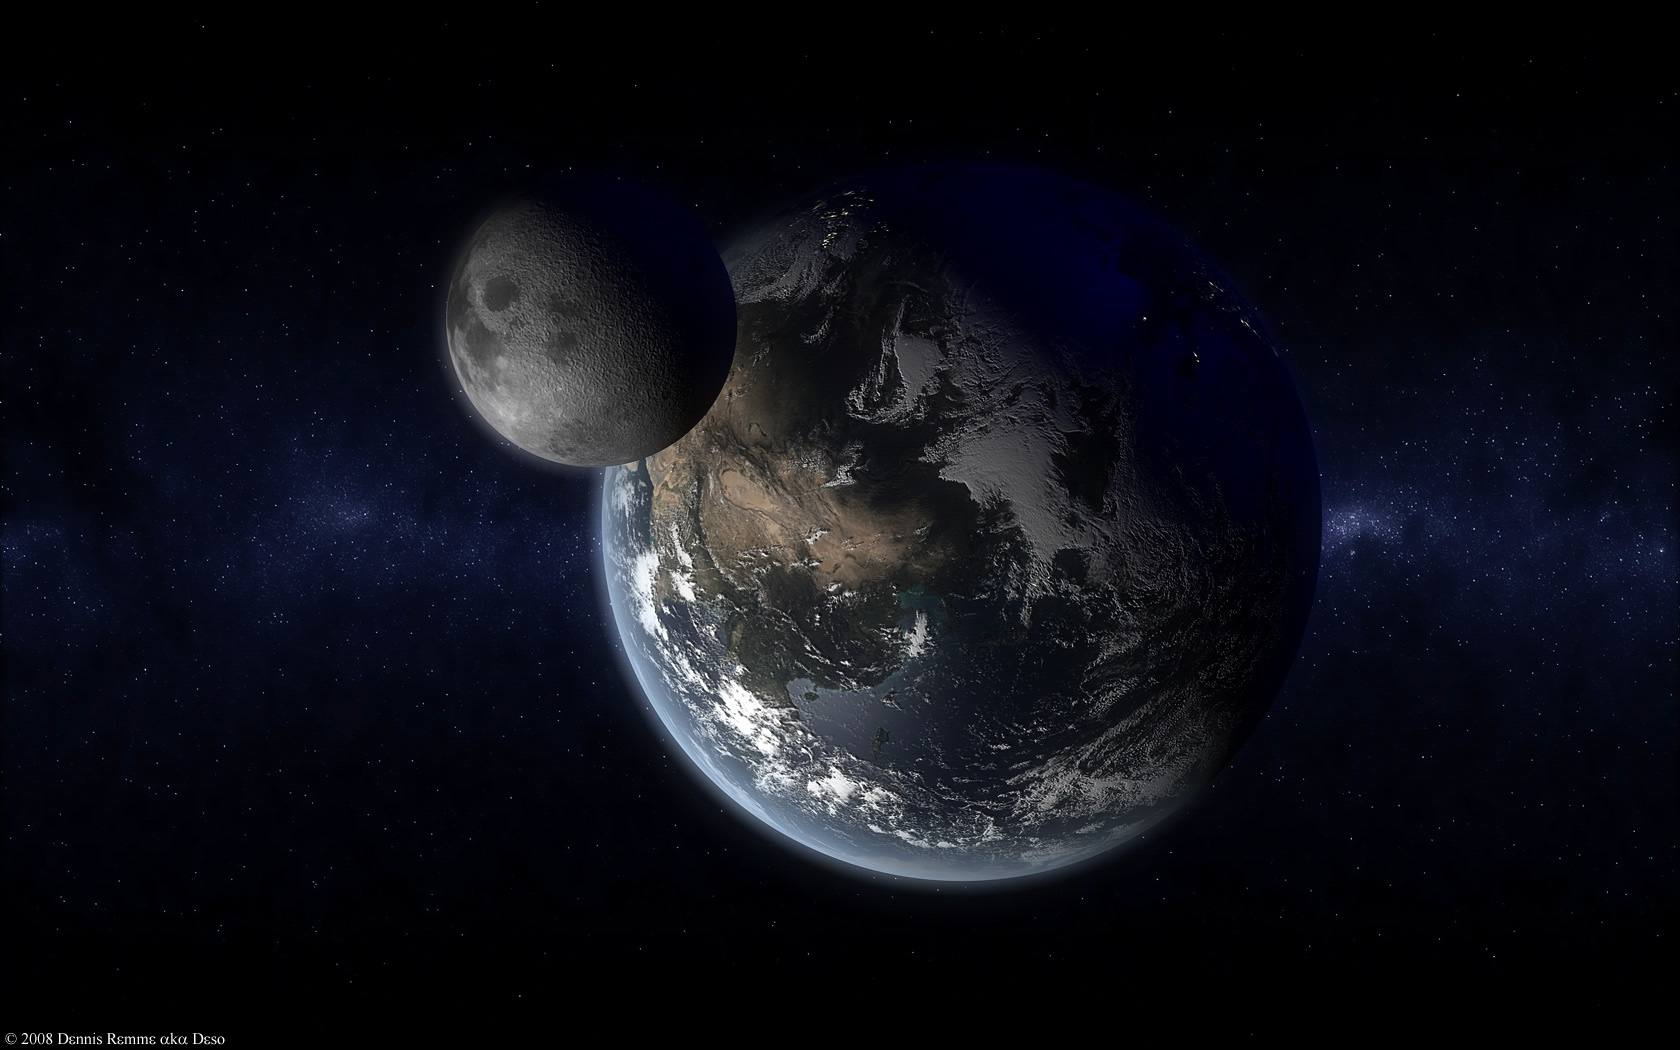 Earth and Moon - Test